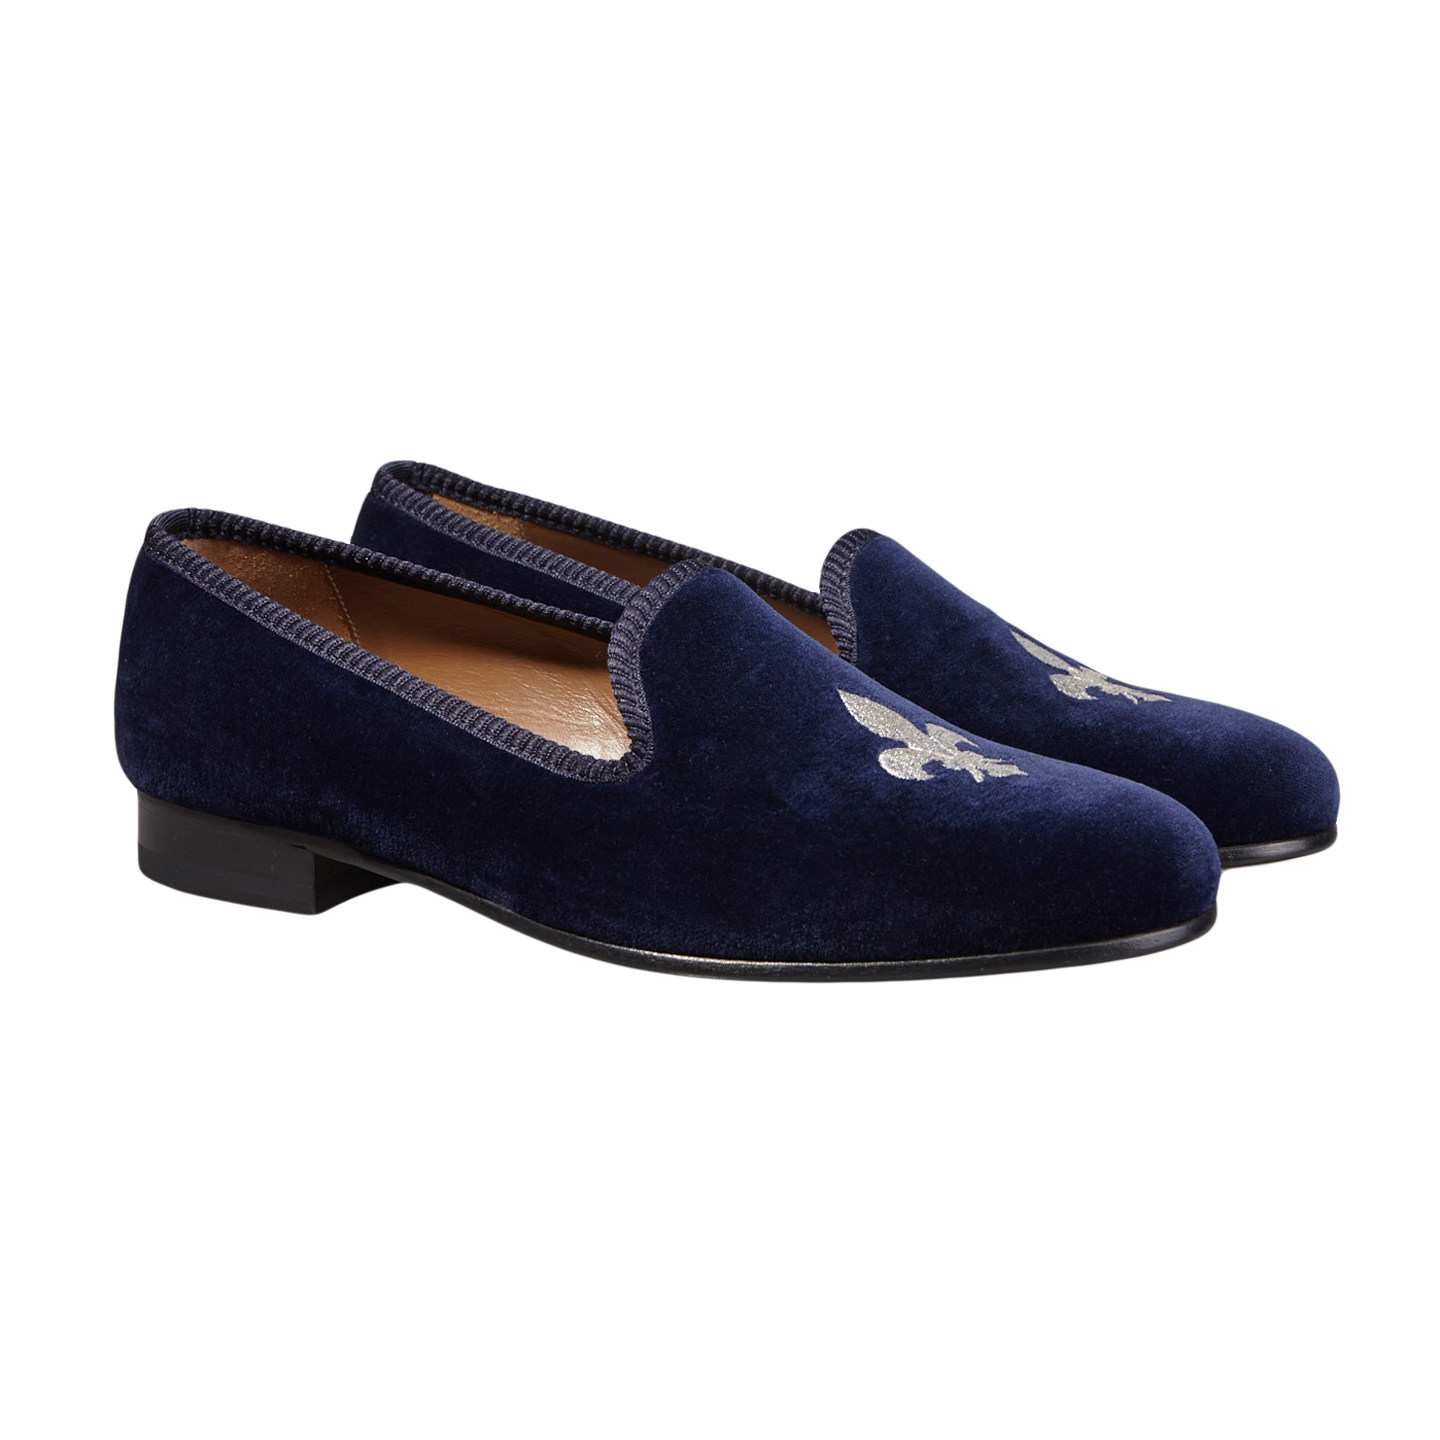 Bow Tie Navy Velvet Slipper French Lily Front